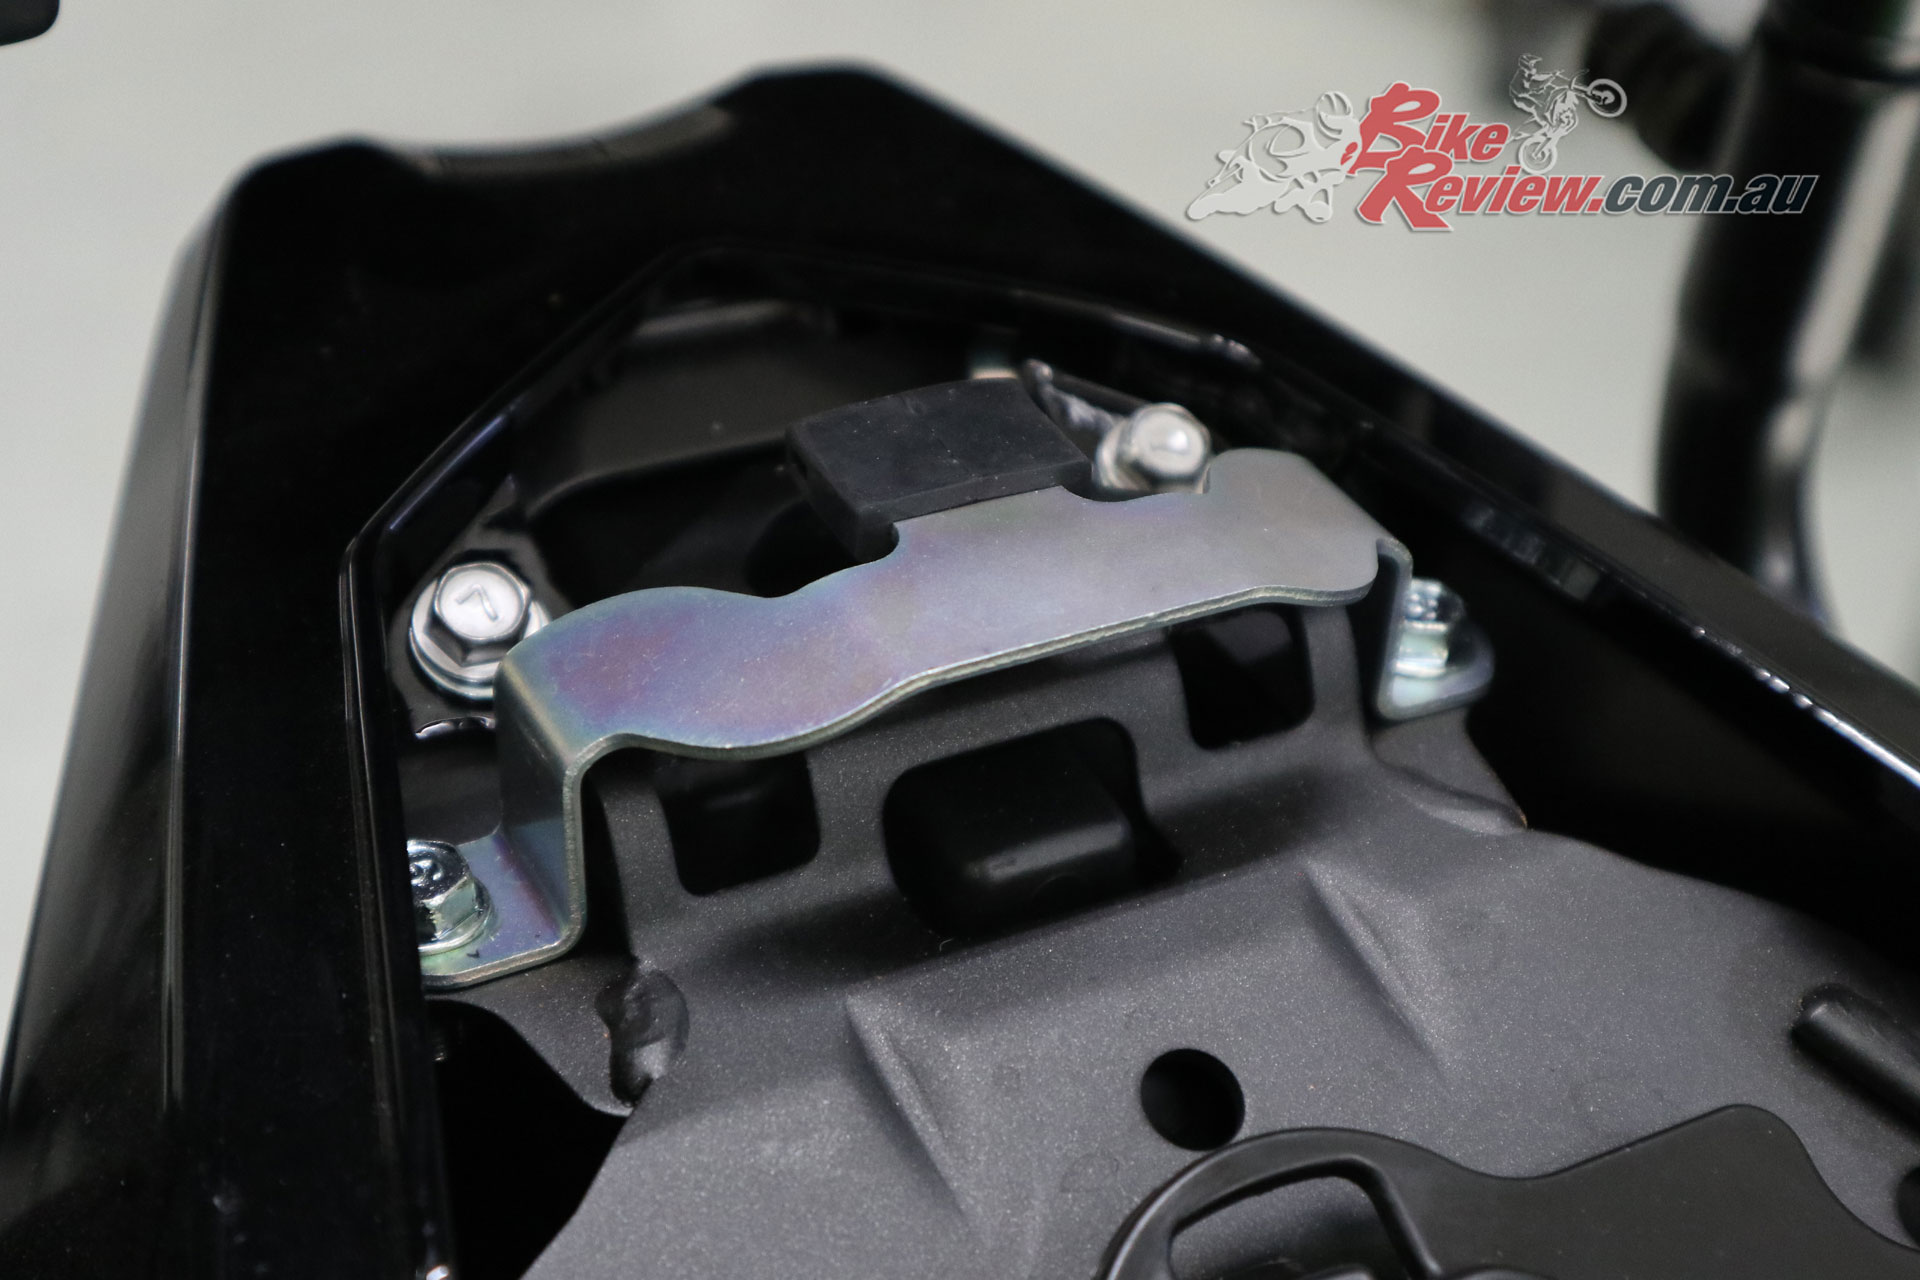 A bracket over the standard pillion seat mounting point is required but prevents easy switching between the seat cowl and pillion seat